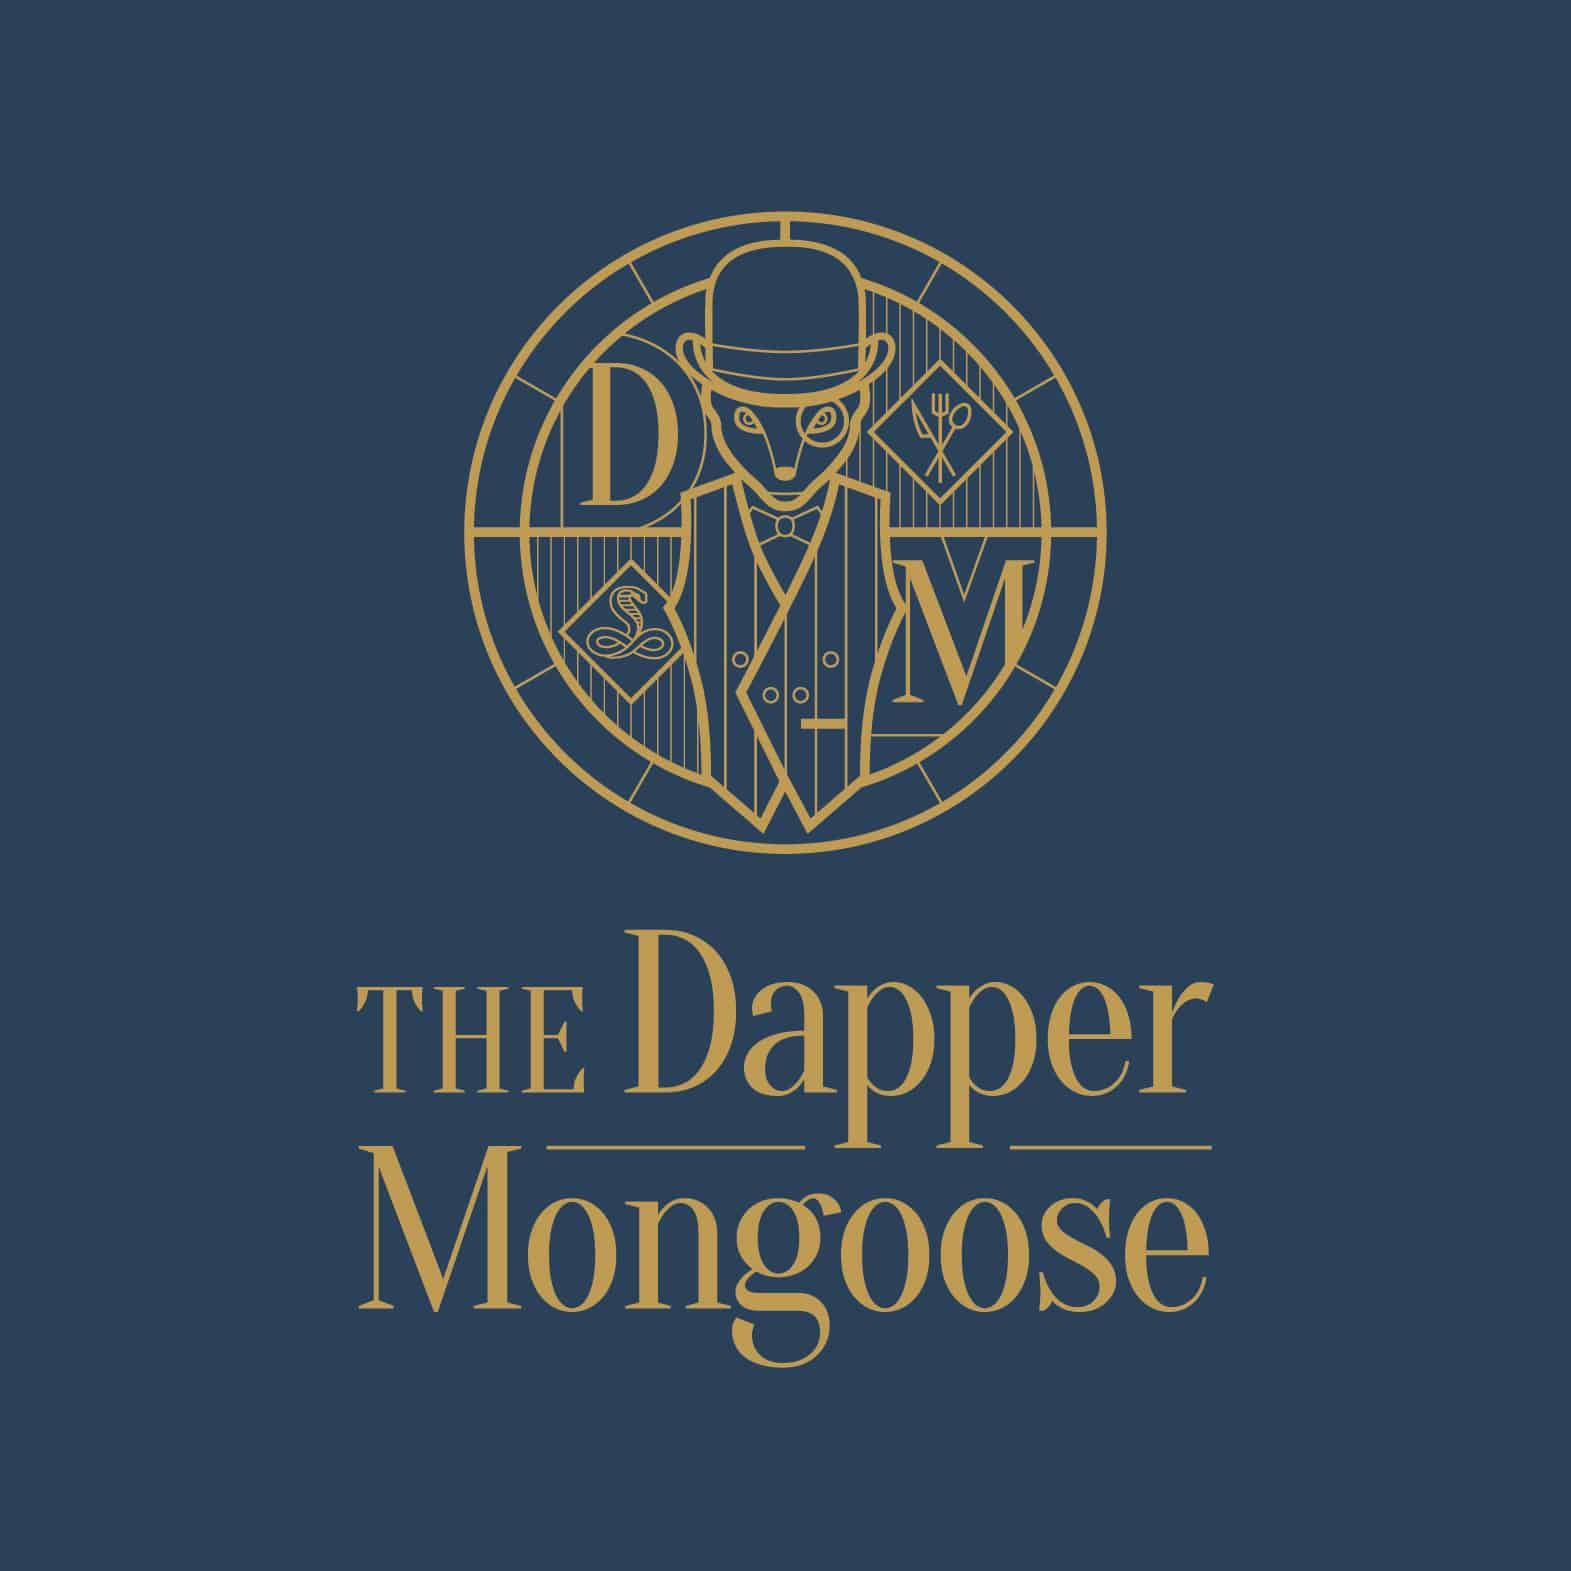 Dapper-Mongoose-Logo-Gold-on-Blue